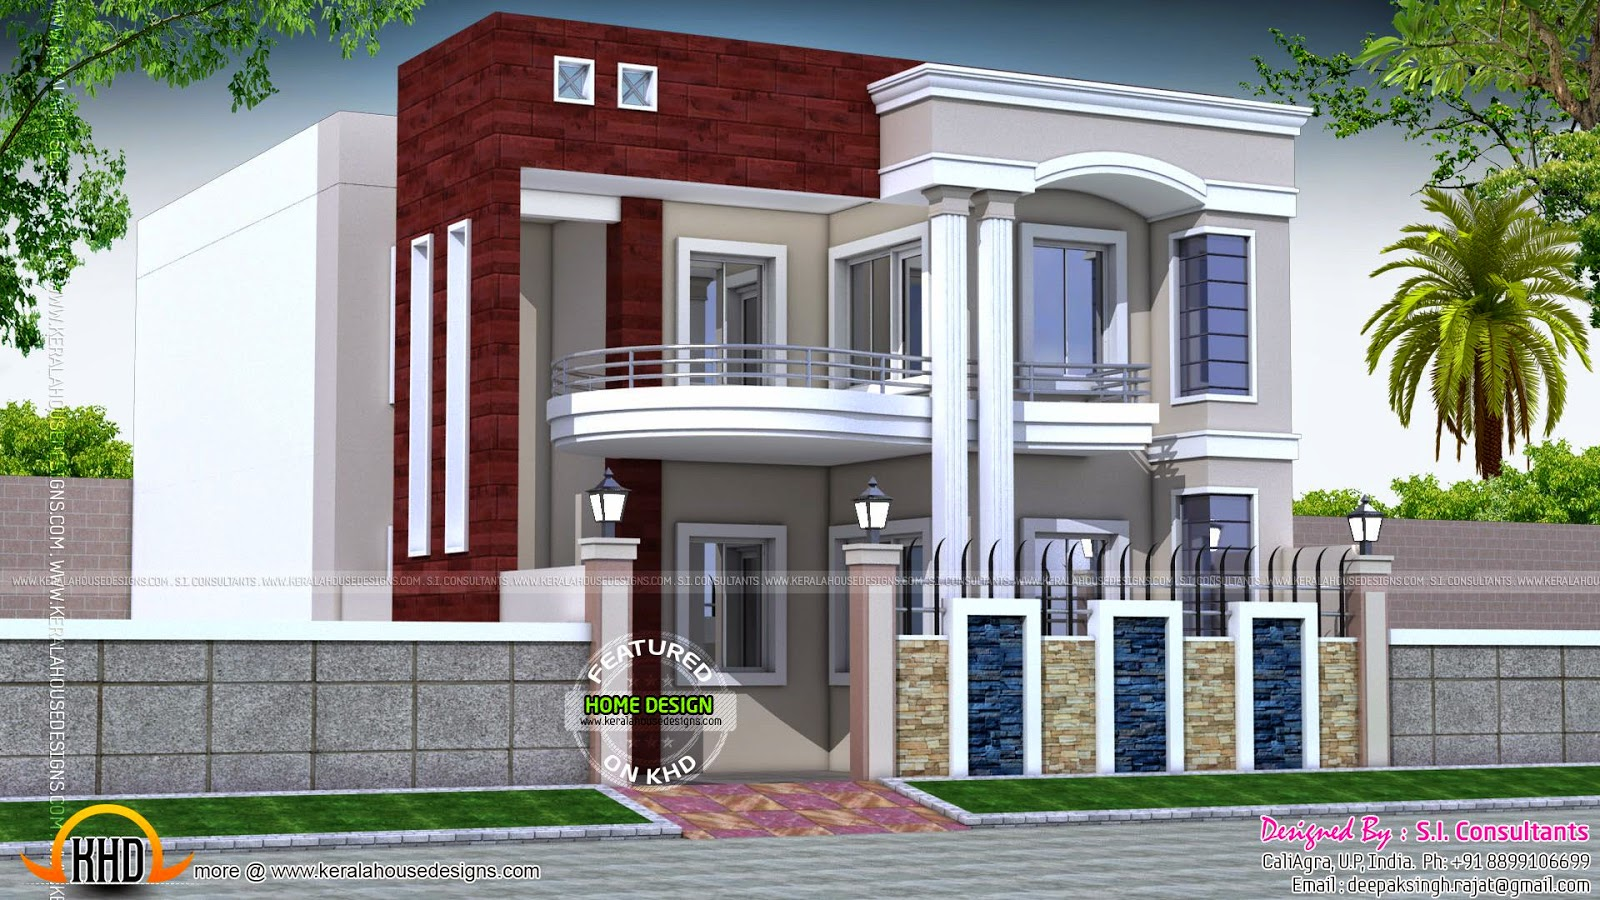 House design in north india kerala home design and floor for Indian house floor plans free